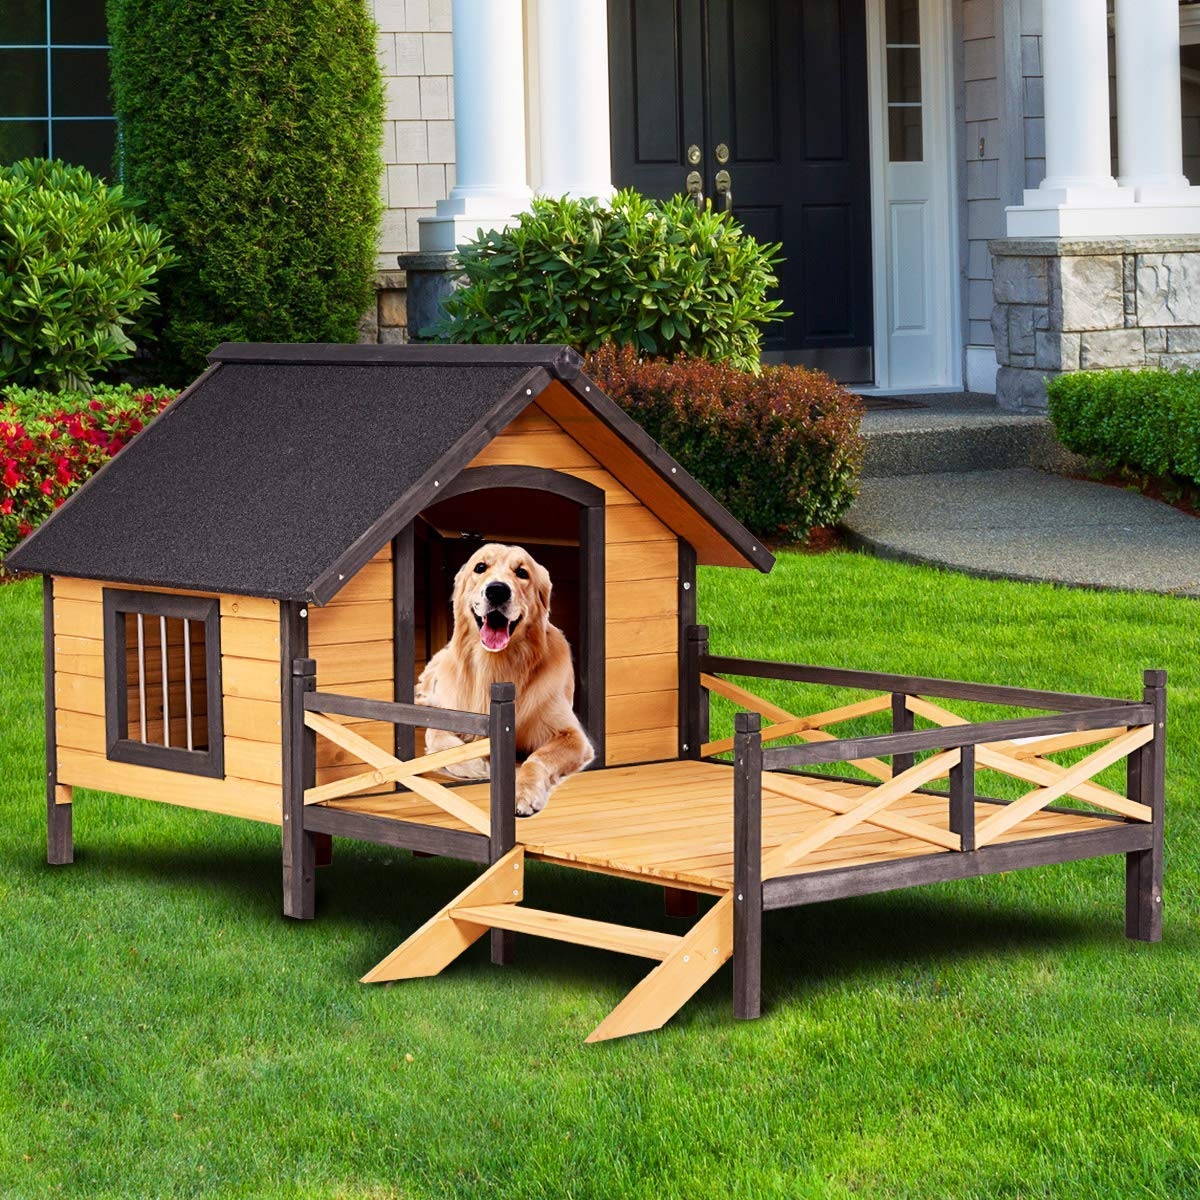 Tangkula Wood Dog House, Cabin Style Large Elevated Weather Waterproof Outdoor Pet Dog House, Lodge with Porch, Spacious Deck for Sunny Nap, Wooden Pet Dog House by Tangkula (Image #2)